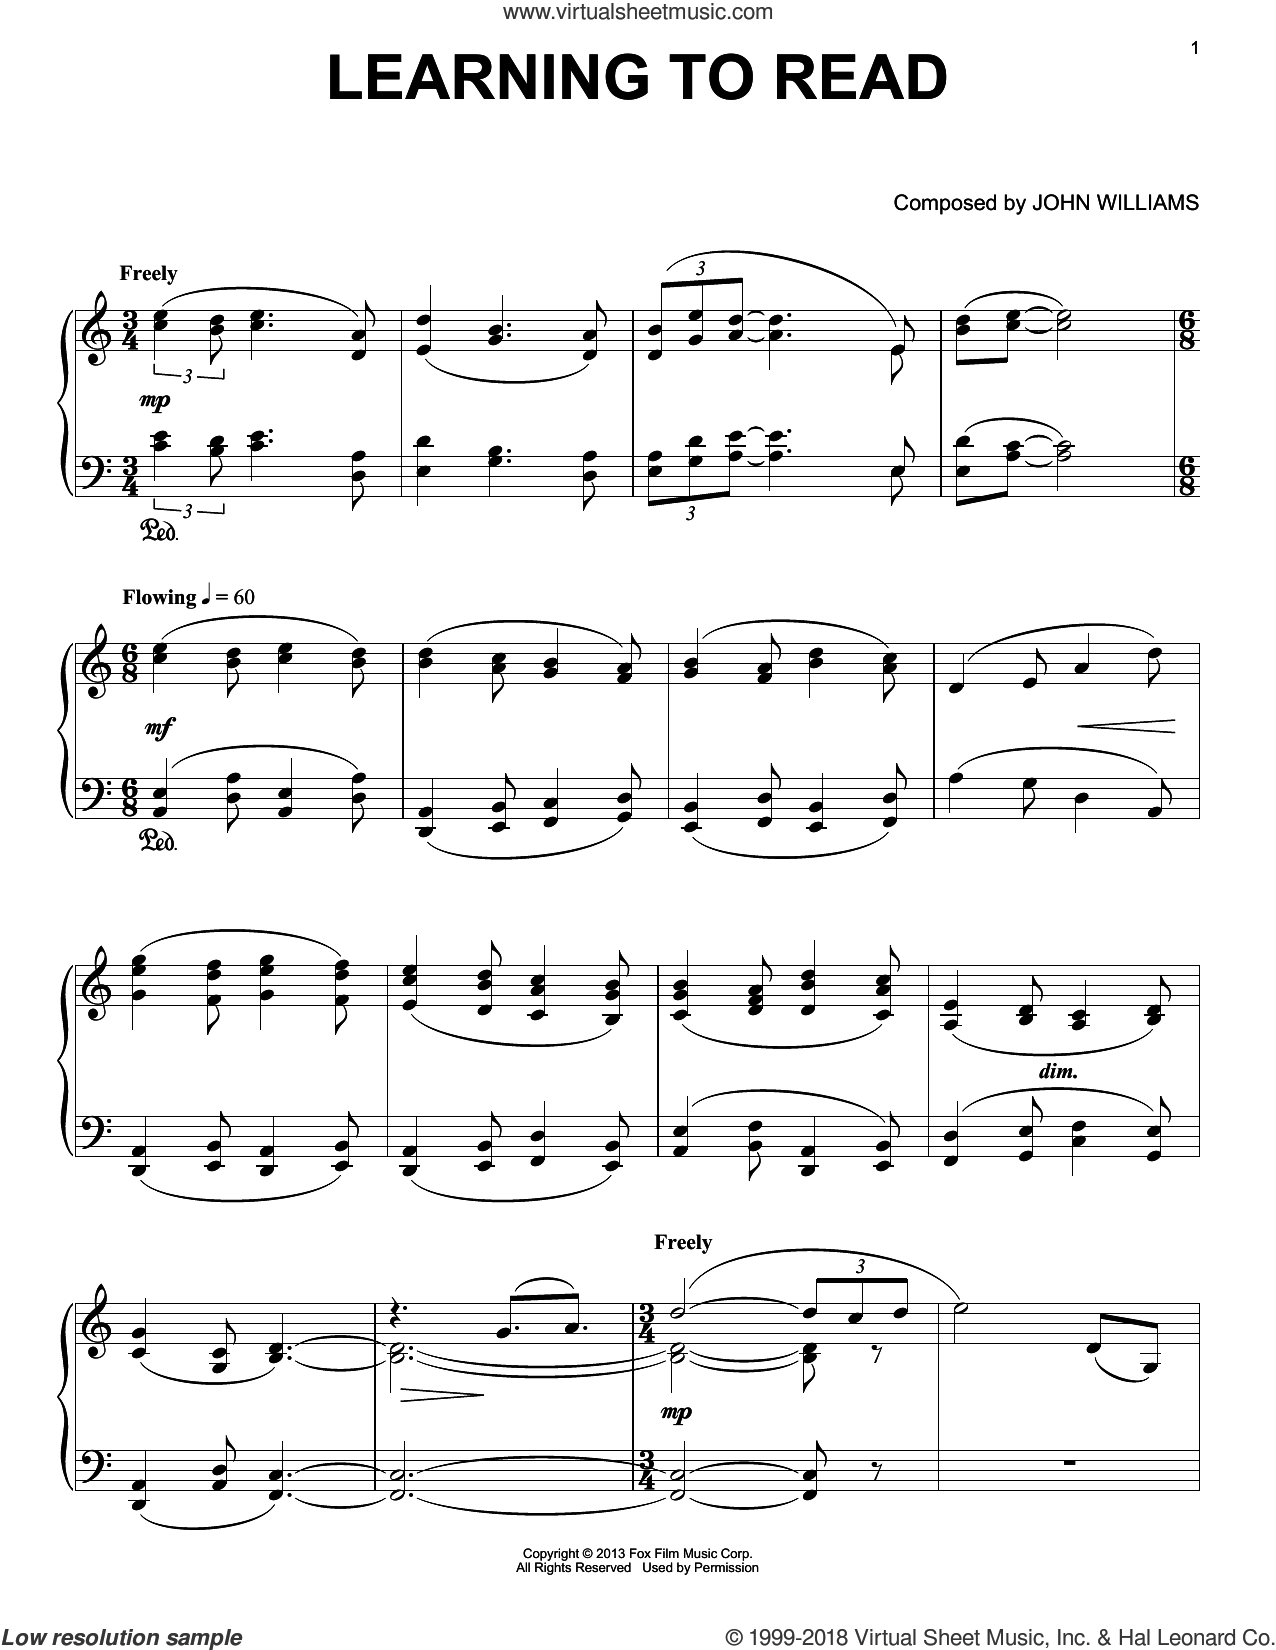 Learning To Read sheet music for piano solo by John Williams. Score Image Preview.